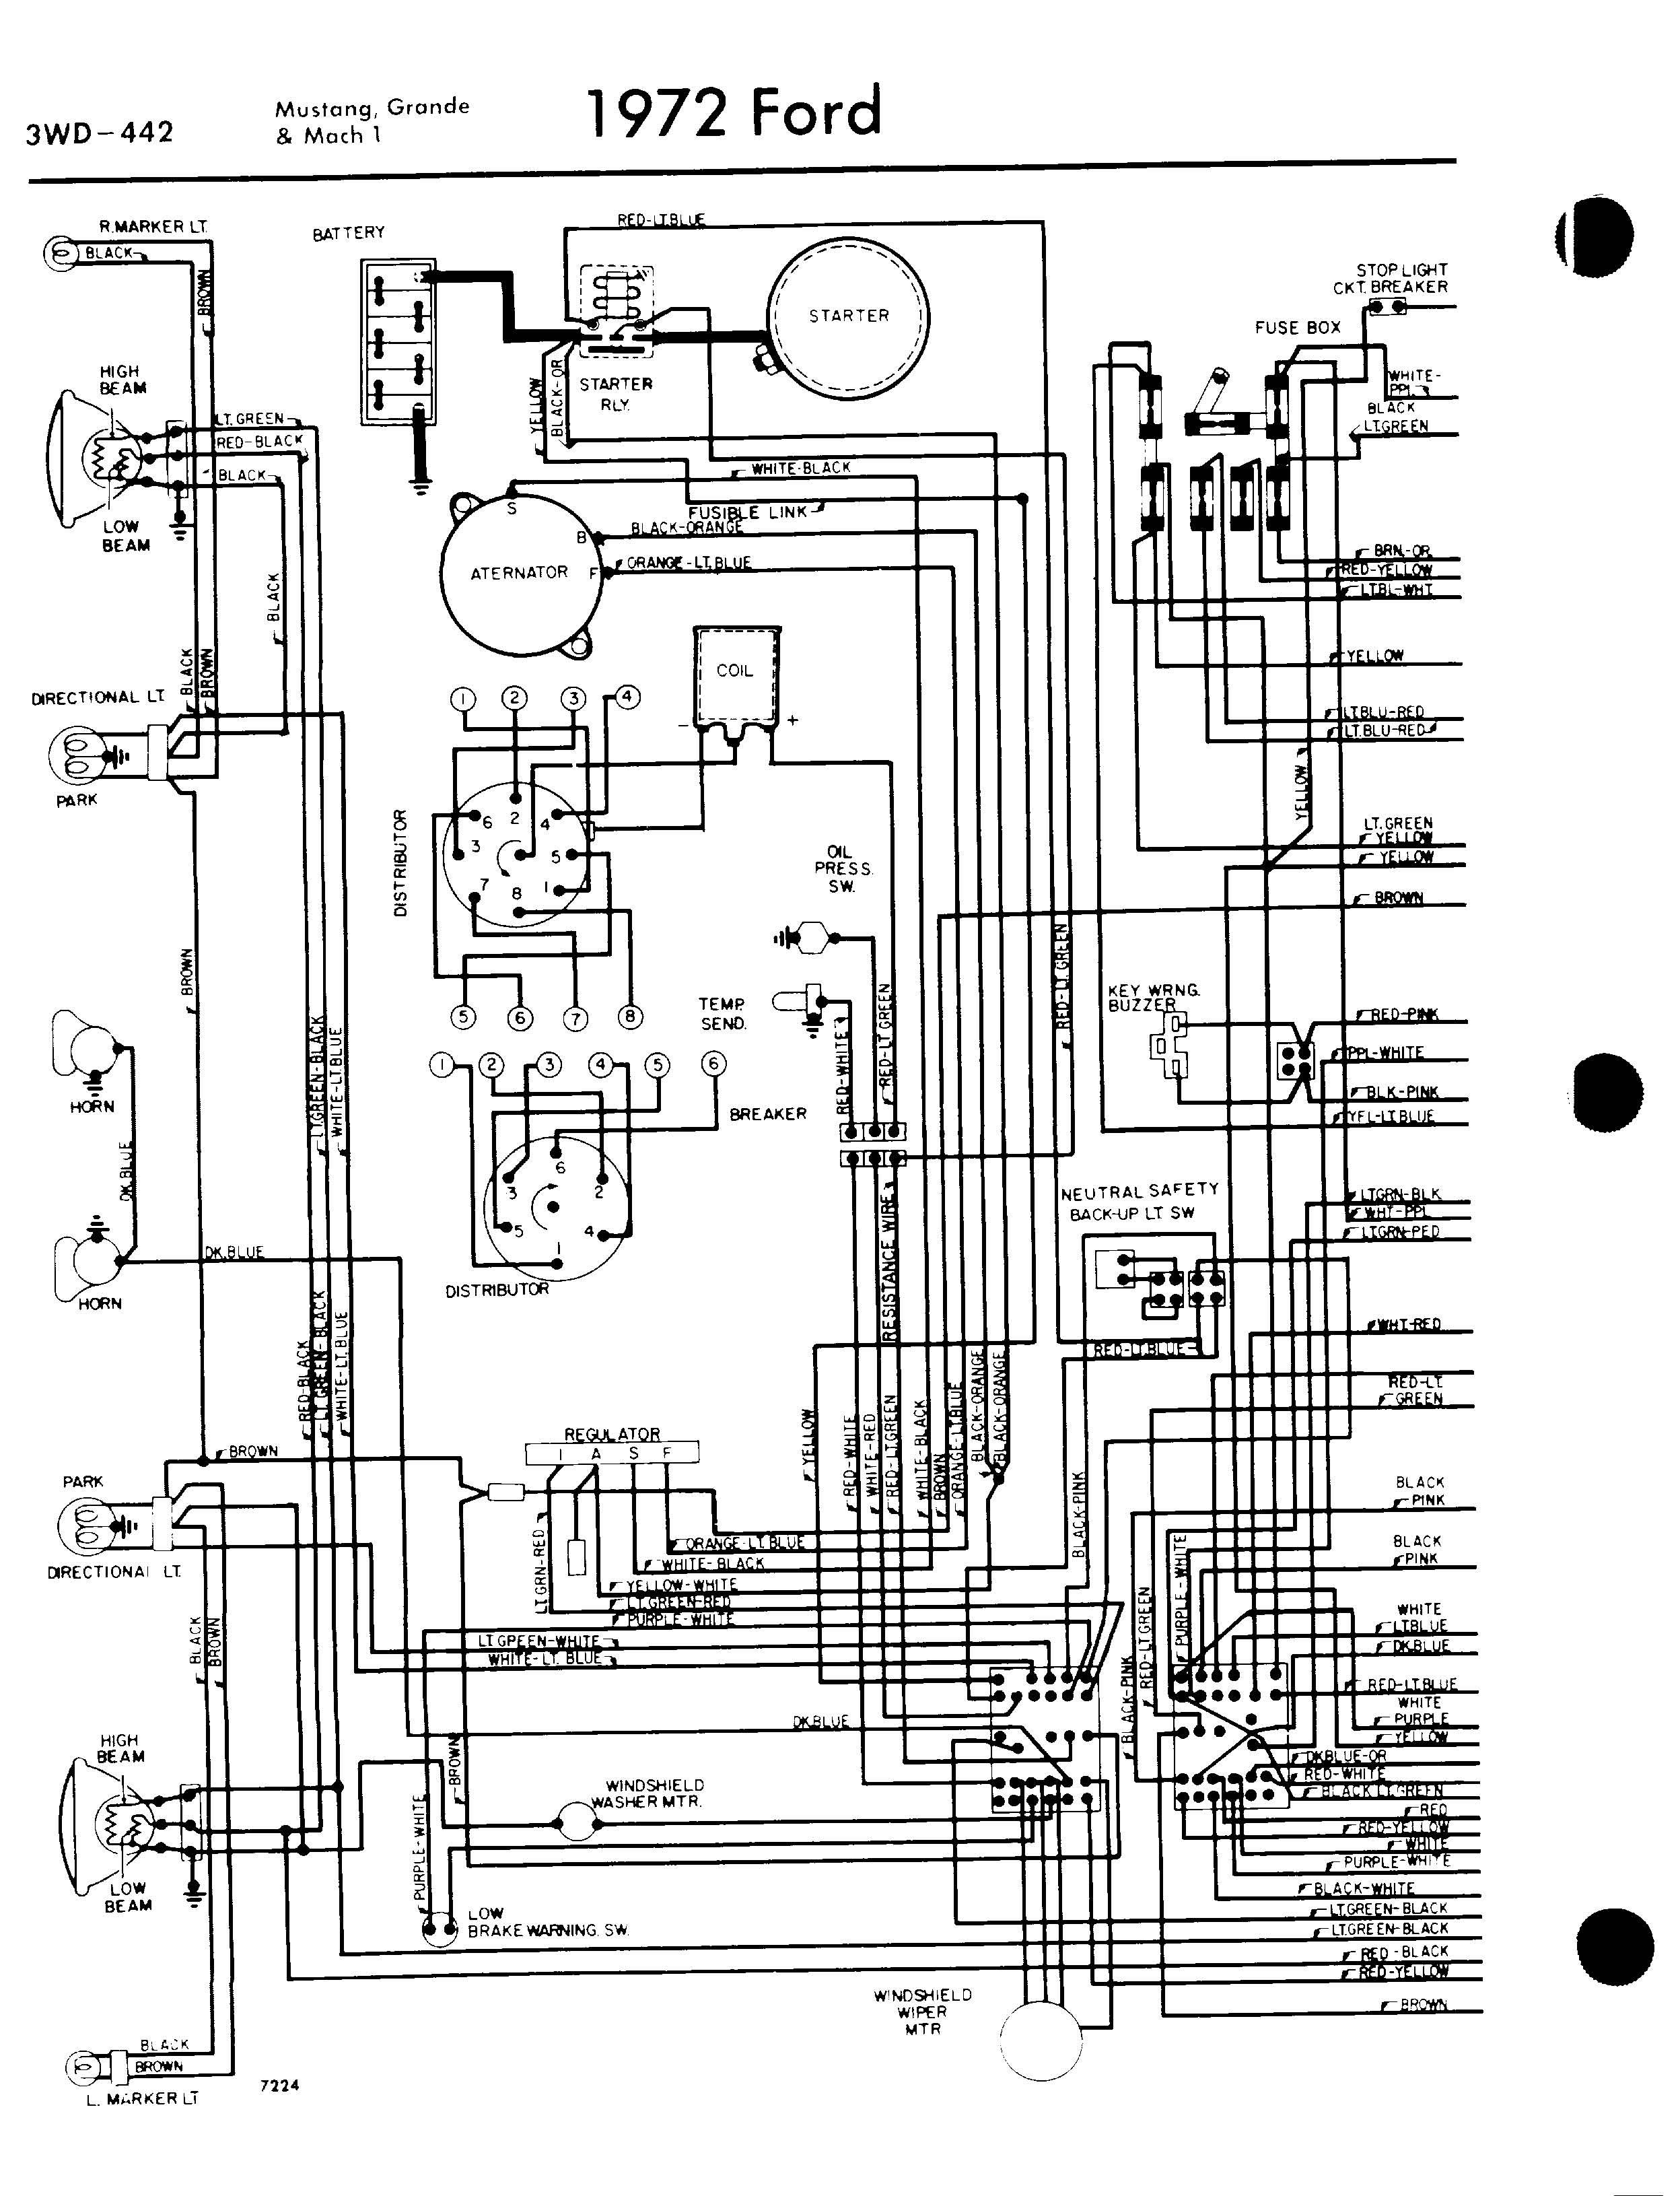 Mustang Wire Harness | Wiring Schematic Diagram on ford starter wiring diagram, 1966 ford backup light wiring diagram, 1966 ford ignition switch wiring diagram, 1966 ford f-250 wiring diagram, ford 3 wire alternator diagram, 1966 mustang color wiring diagram, 1966 ford truck wiring diagram, 1966 ford charging system diagram, ford truck alternator diagram, 1966 mustang horn wiring diagram, 1966 ford thunderbird wiring diagram, 66 mustang ignition wiring diagram, 1966 mustang engine wiring diagram, 67 mustang ignition wiring diagram, 1966 ford mustang alternator, ford one wire alternator diagram, 1996 mustang wiring diagram, 1966 ford galaxie wiring-diagram, 1966 mustang dash wiring diagram, 1966 ford fuel gauge diagram,